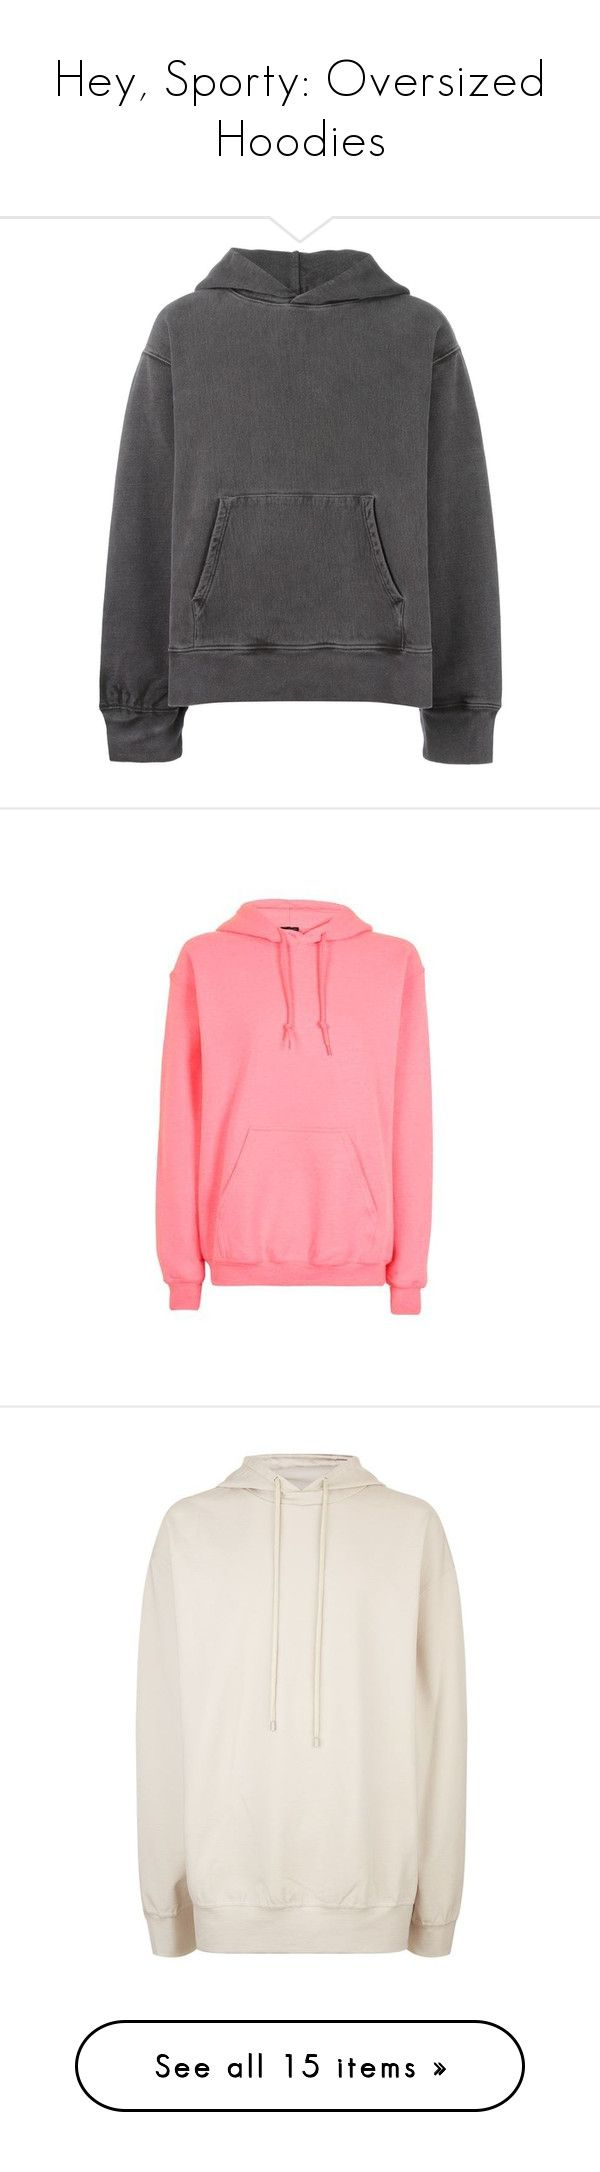 """""""Hey, Sporty: Oversized Hoodies"""" by polyvore-editorial ❤ liked on Polyvore featuring oversizedhoodies, tops, hoodies, shirts, hooded sweatshirt, long sleeve hoodie, long-sleeve shirt, unisex shirts, hooded pullover and bright pink"""